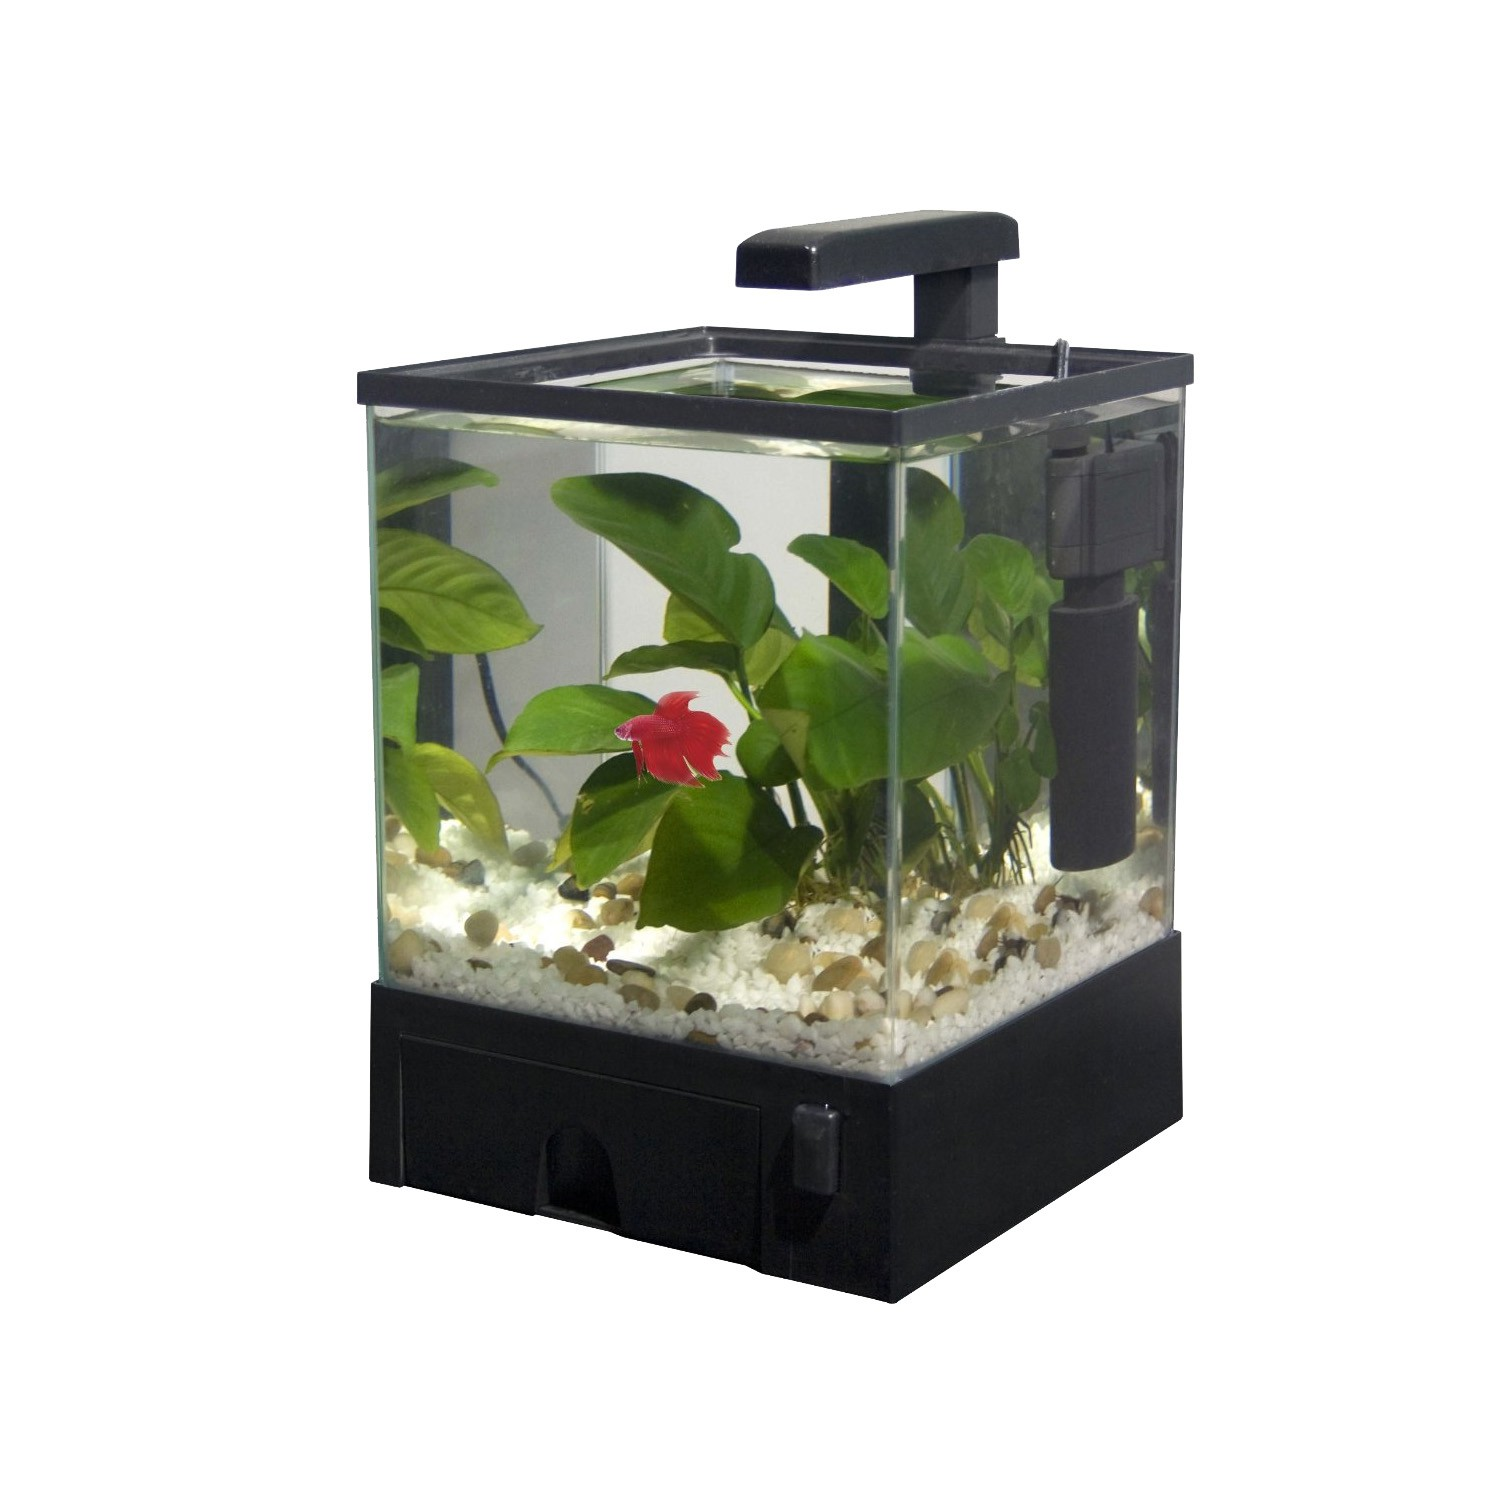 aquabox led nano aquarium komplett set 22x19x29 5cm 5 5 l nano aquarien sets komplett. Black Bedroom Furniture Sets. Home Design Ideas